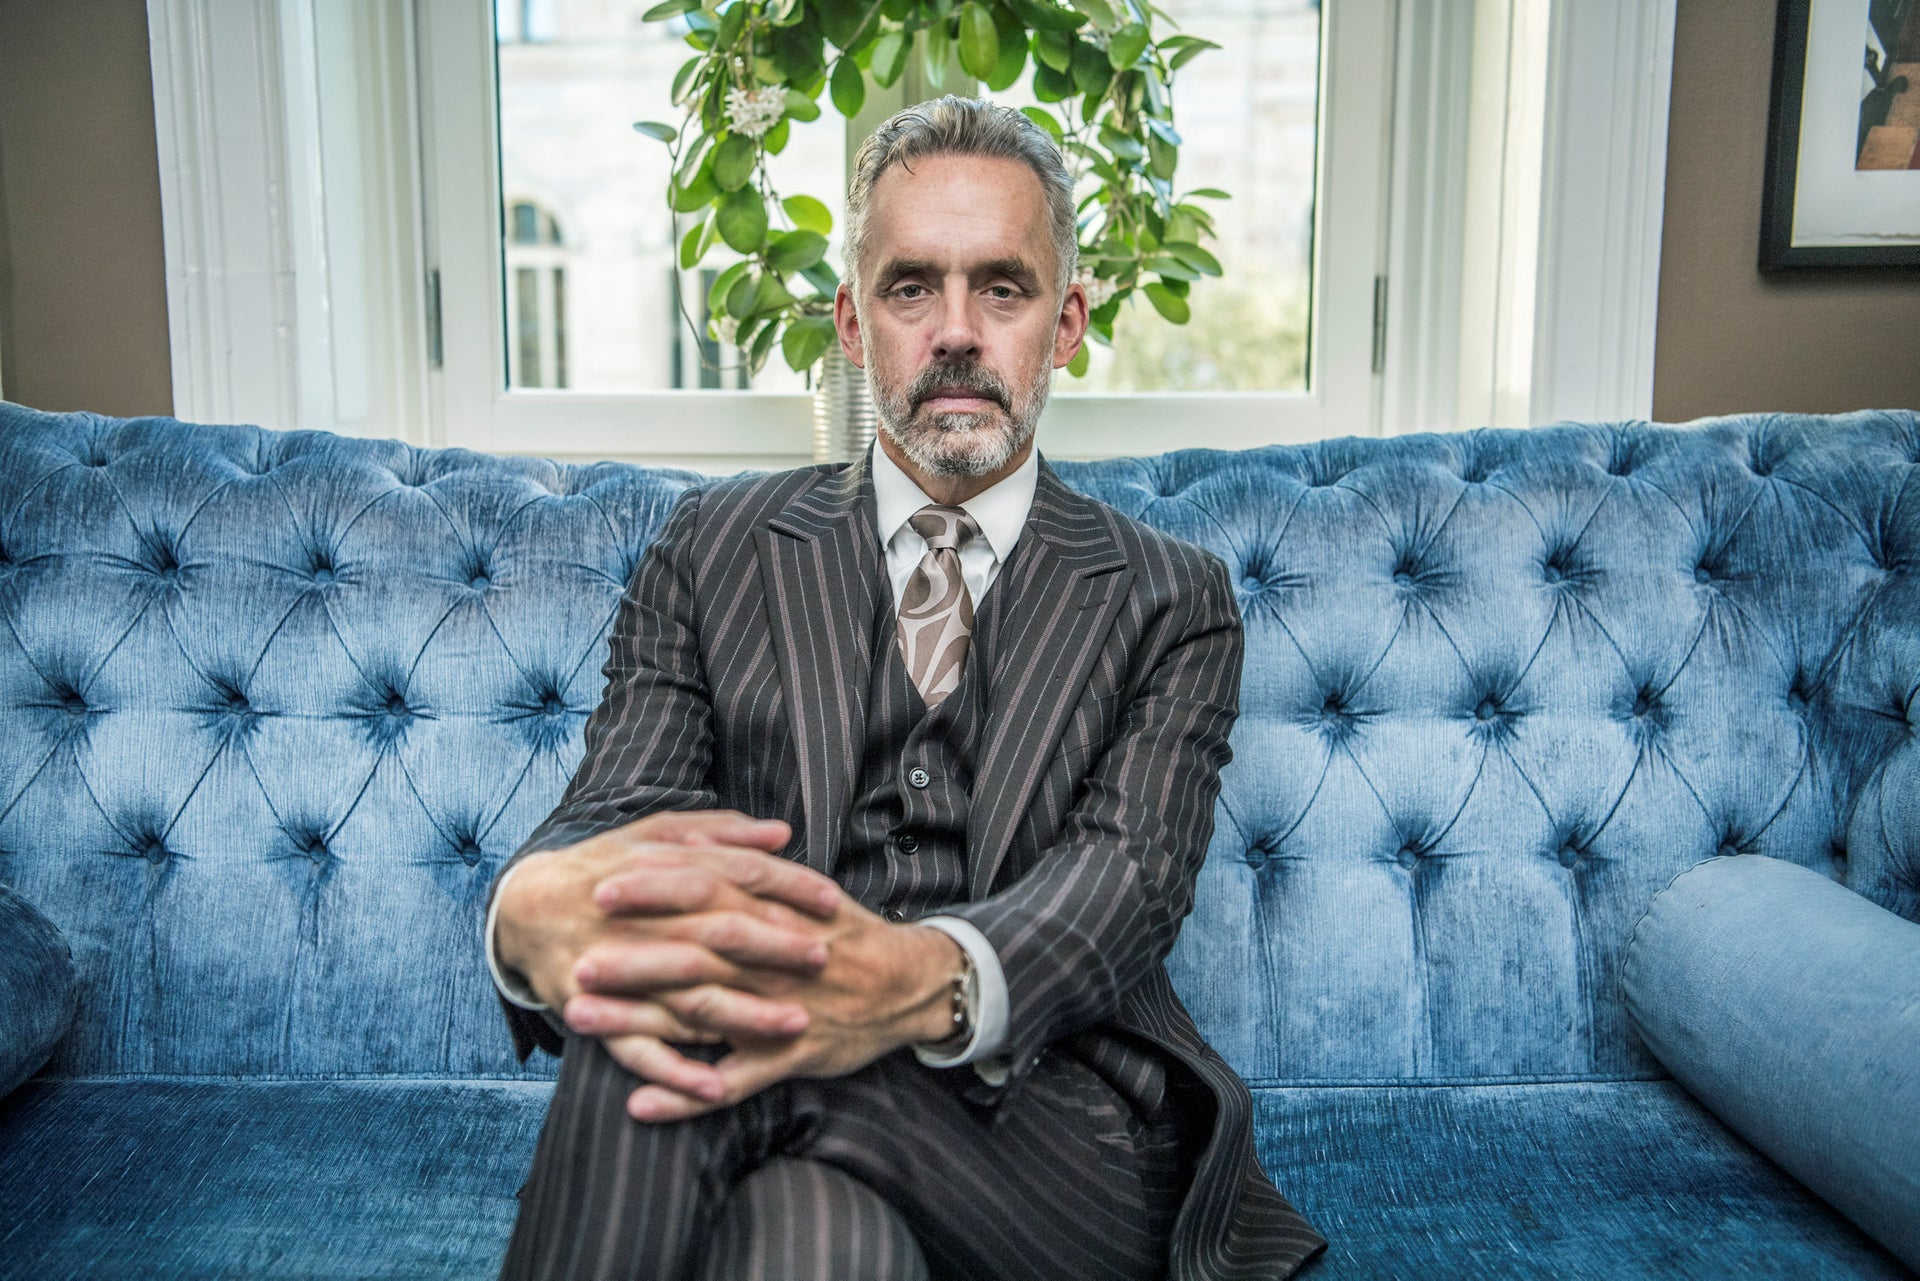 Jordan B Peterson, Professor of Psychology and  Clinical Psychologist at the University of Toronto, Canada